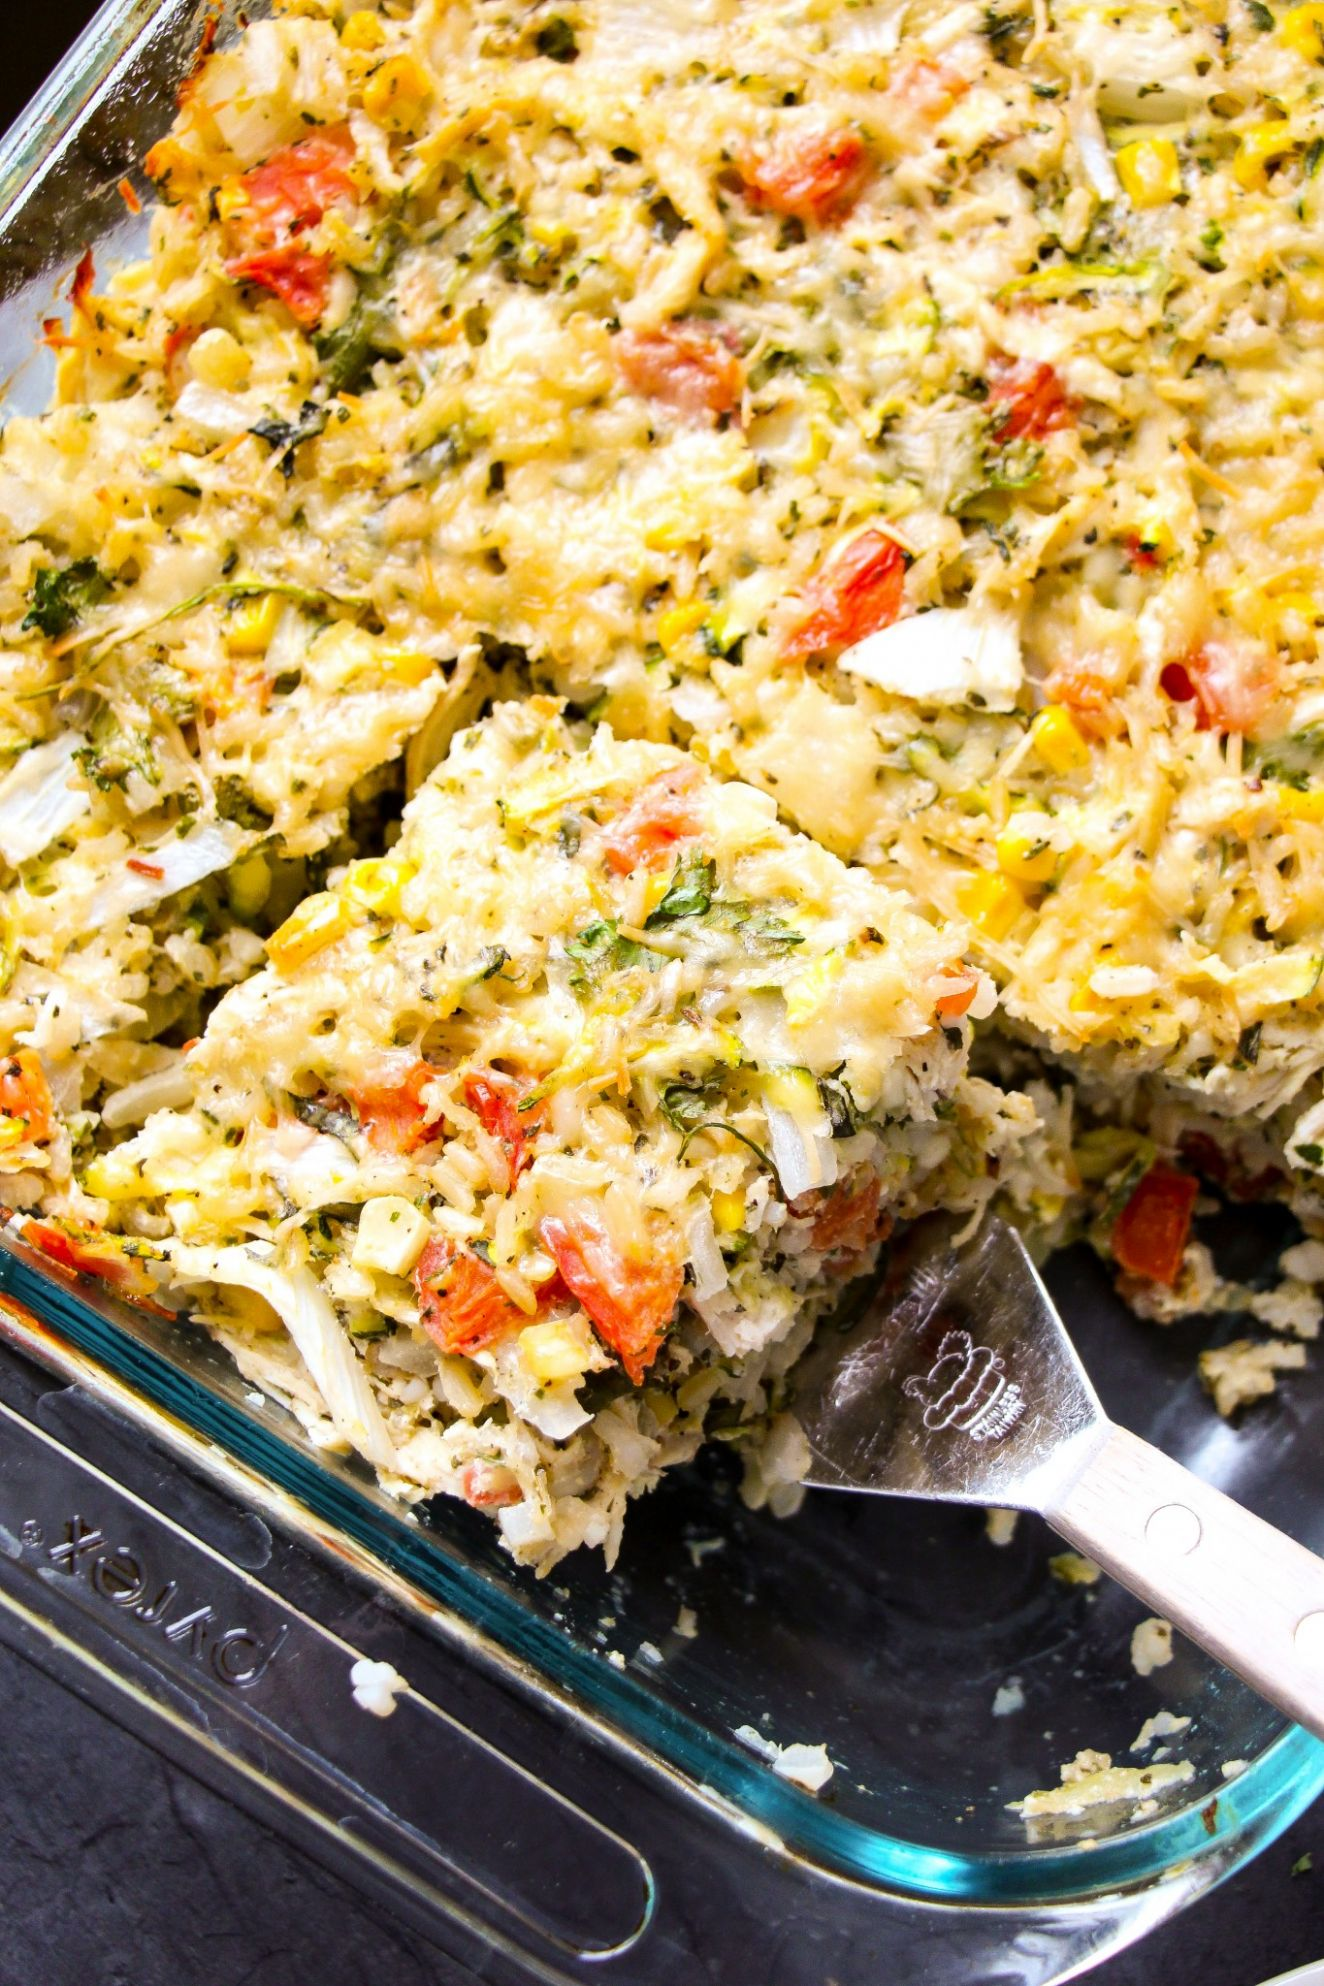 Summer Vegetable & Rotisserie Chicken Rice Bake - Summer Recipes With Rotisserie Chicken